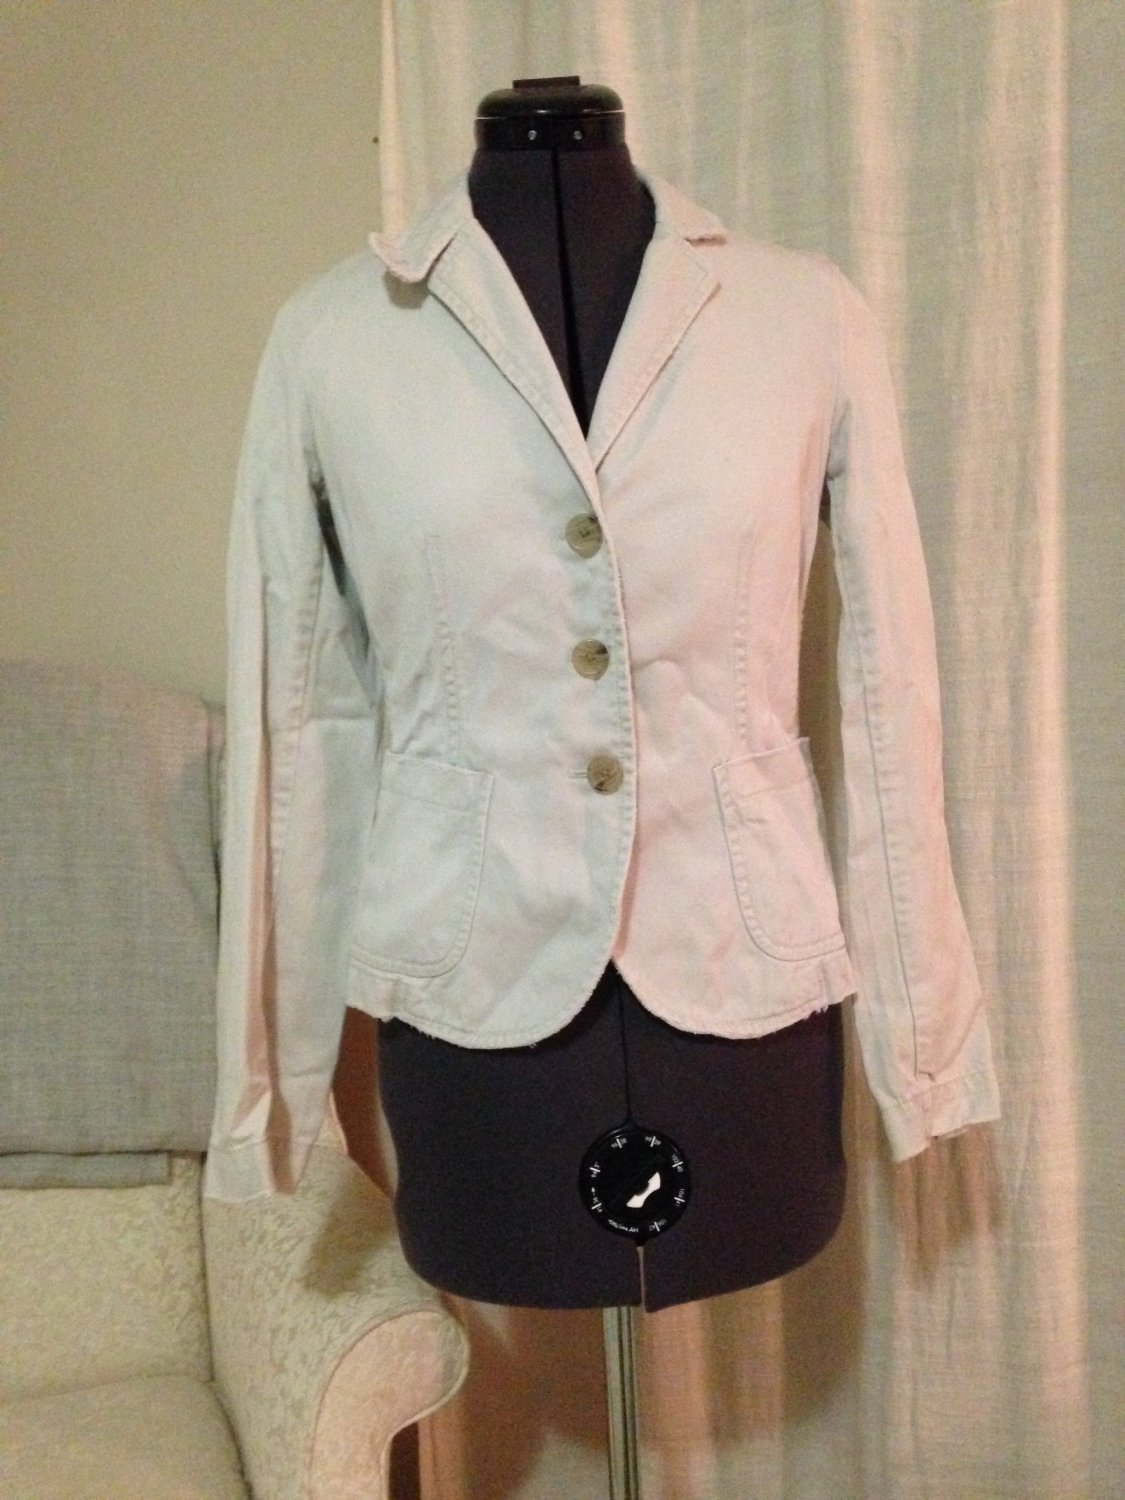 Khaki Fitted Jacket, J Crew Size XS